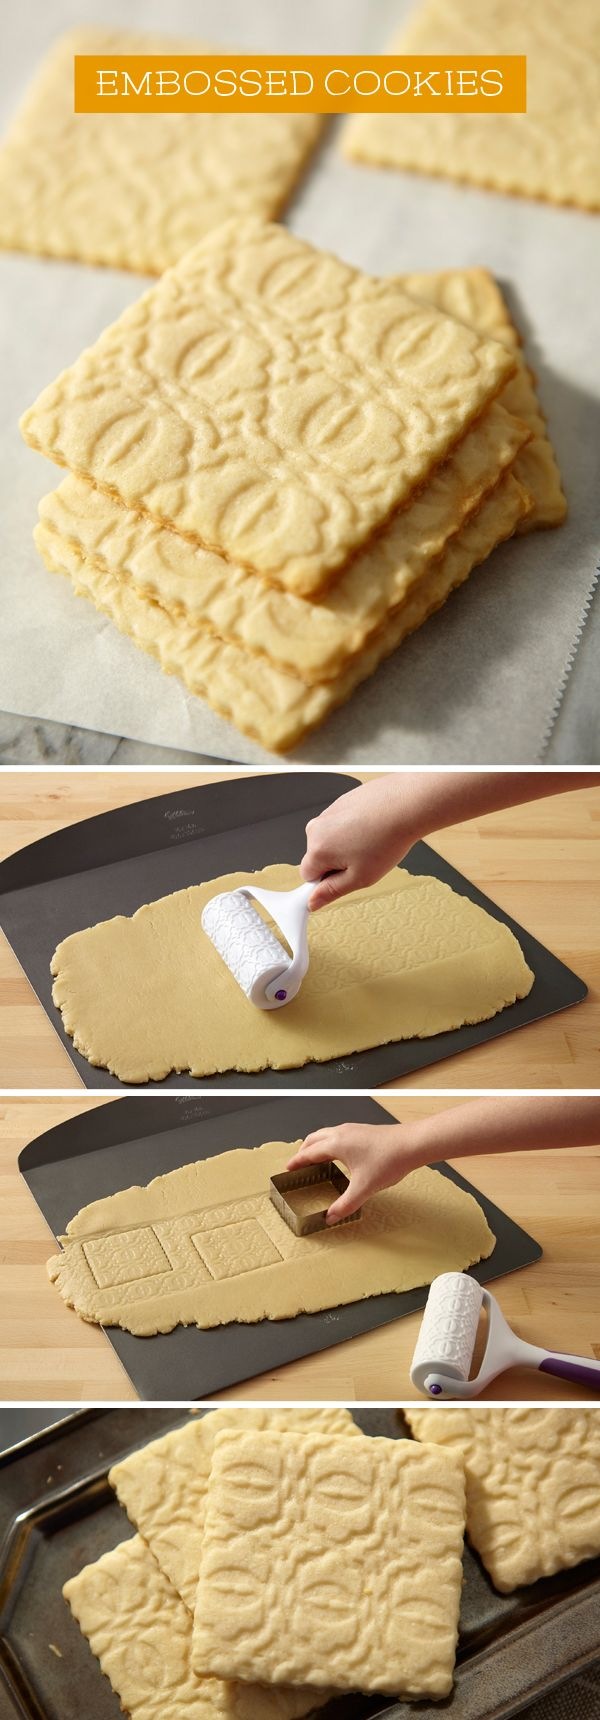 Use a geometric fondant roller to make embossed cookies